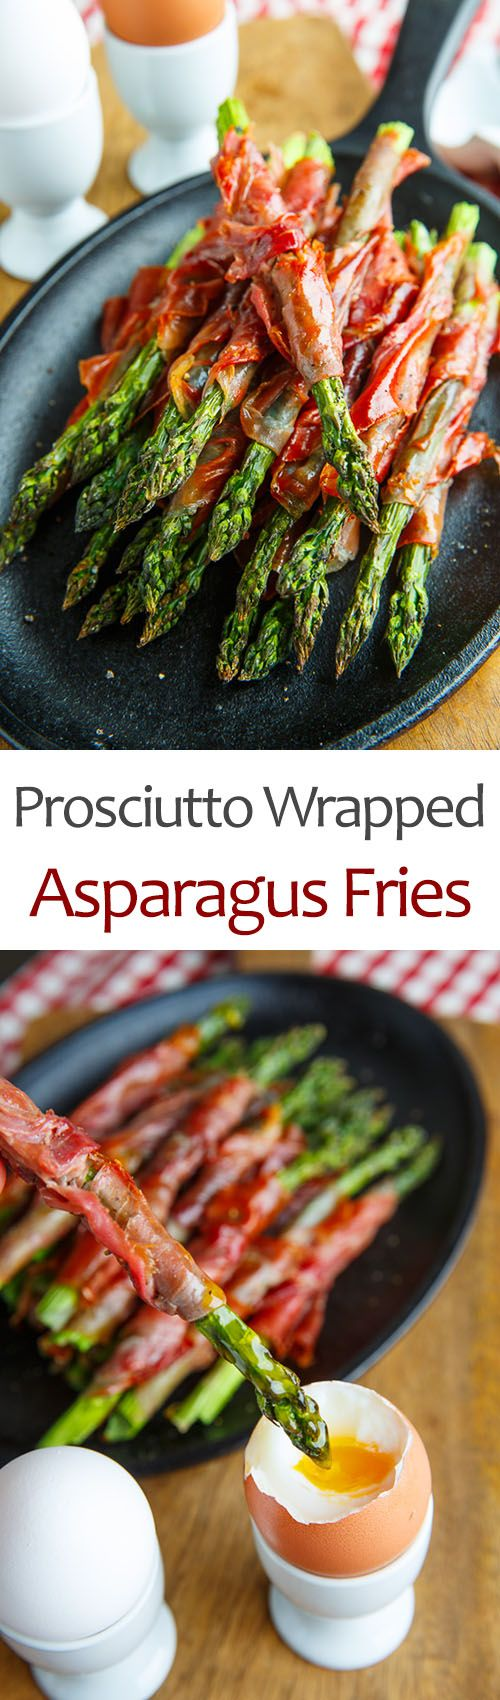 1000+ ideas about Prosciutto Wrapped Asparagus on ...